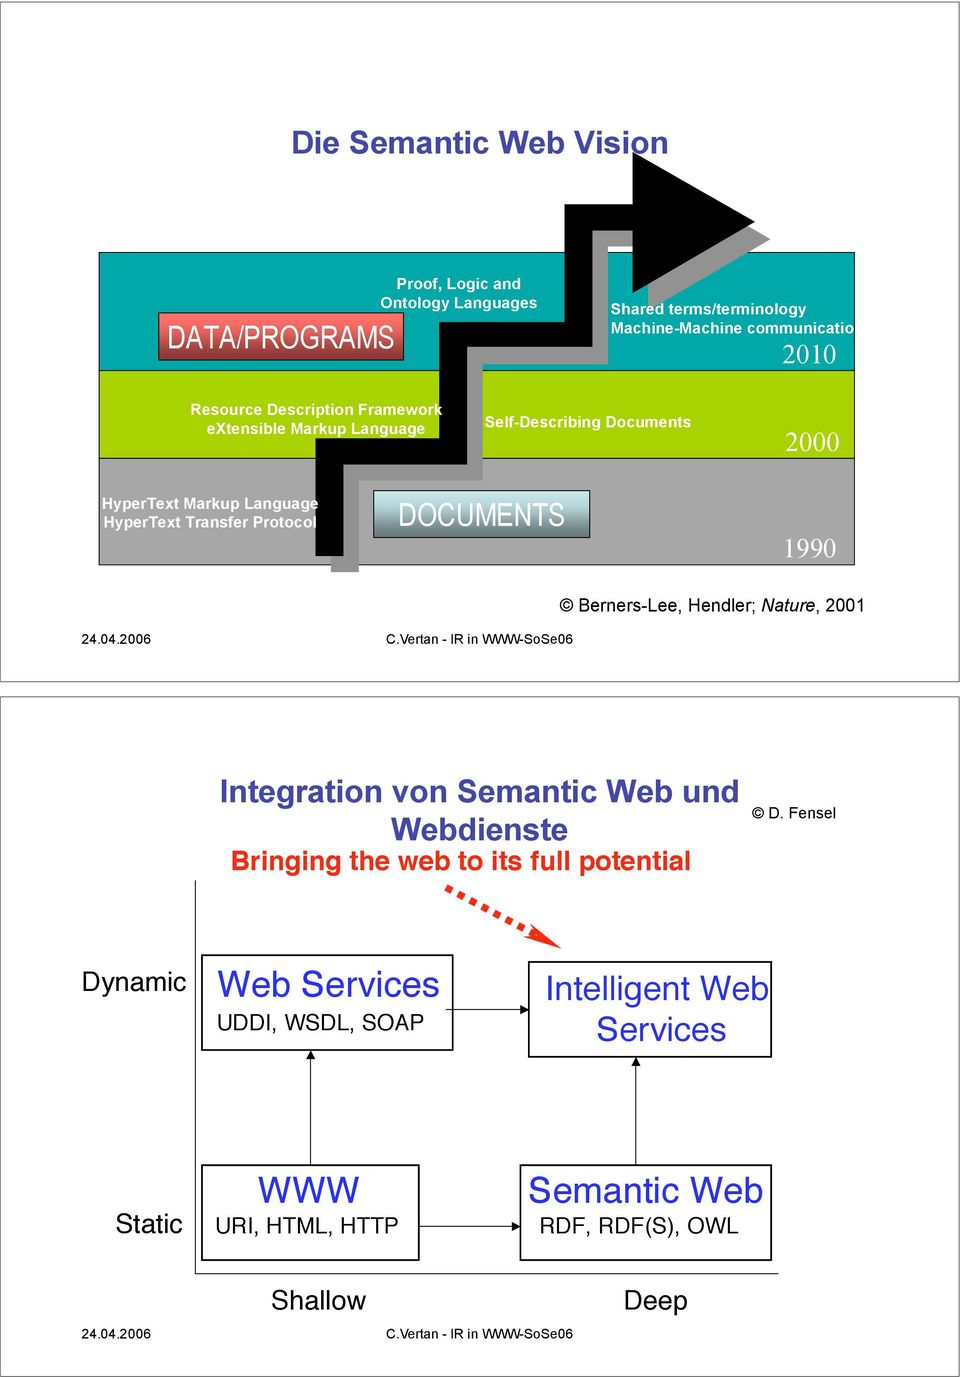 Foundation of the Current Web 1990 Berners-Lee, Hendler; Nature, 2001 Integration von Semantic Web und Webdienste Bringing the web to its full